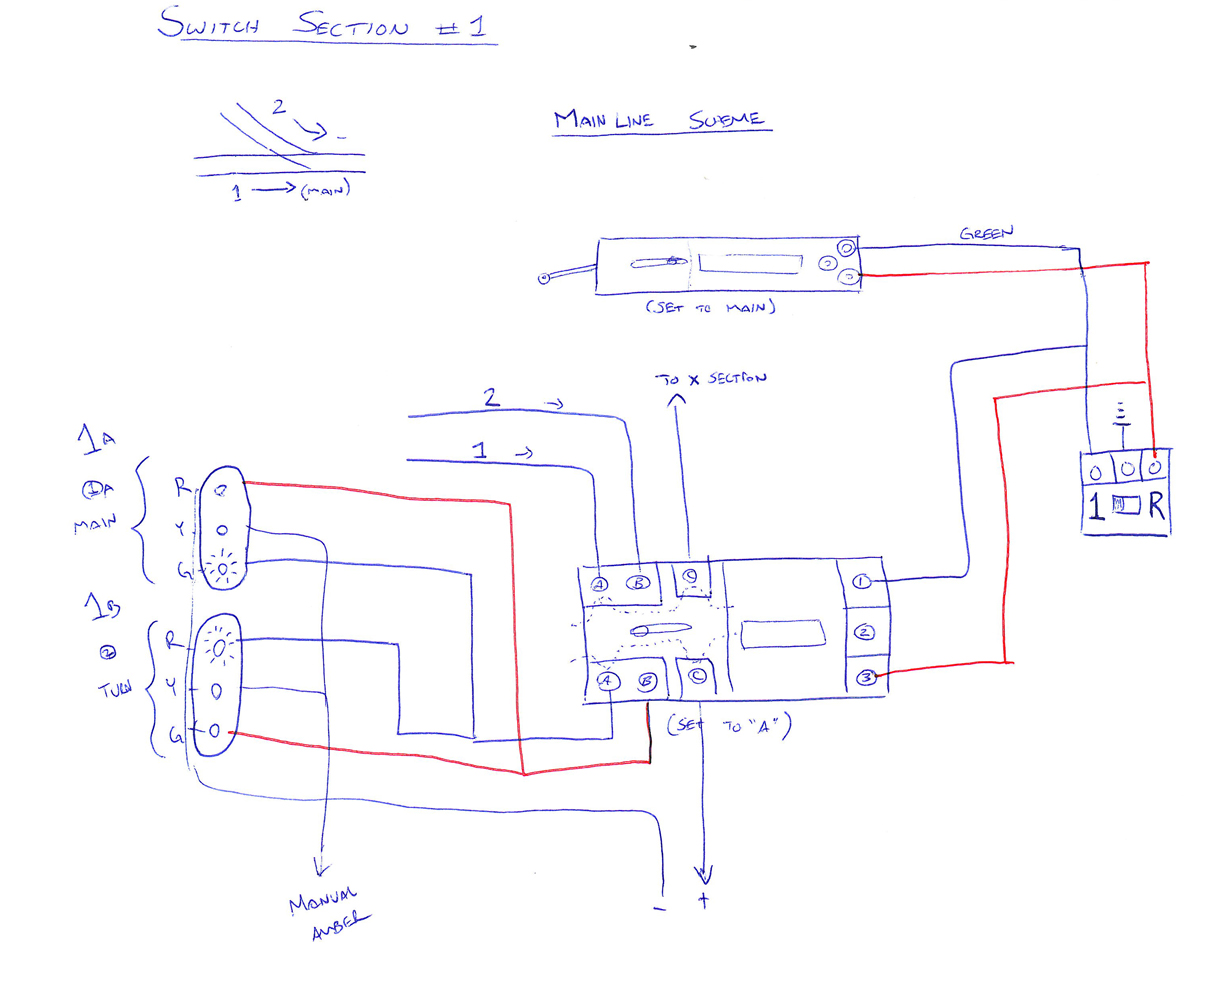 Relay And Switch Machine Control Wiring Diagram For Trackside Lights Lighting Rh Cabanaselgolfo Com